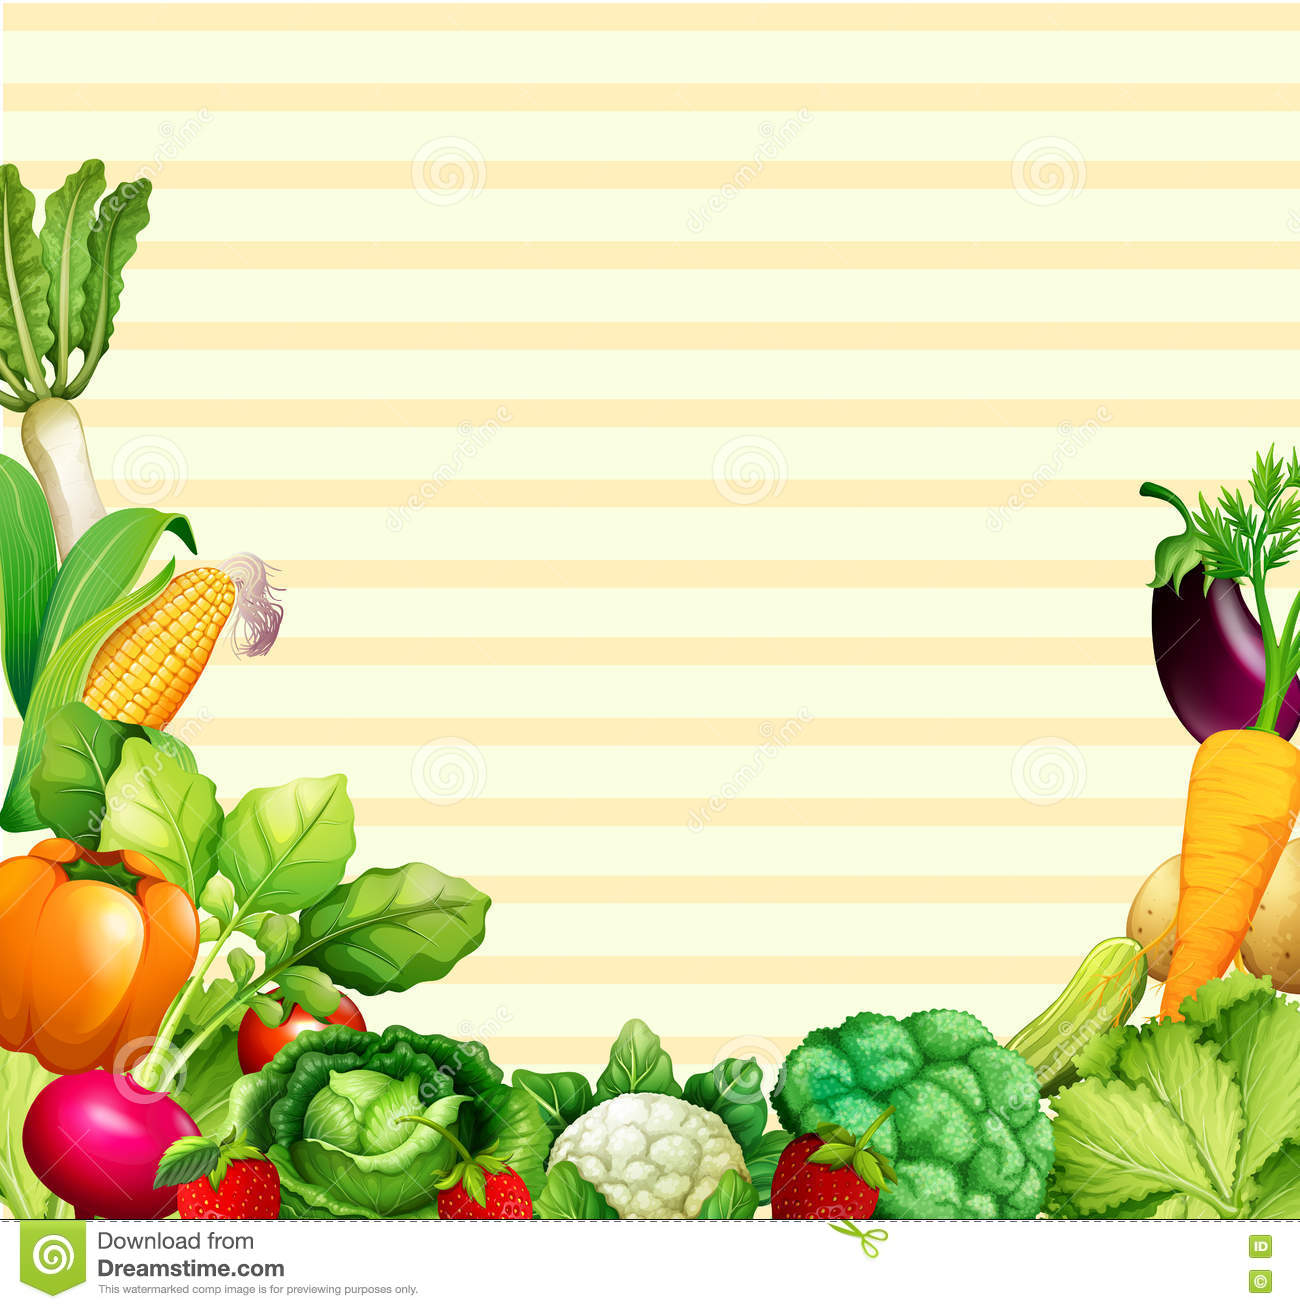 Paper design with vegetables and fruits stock vector for Vegetable design